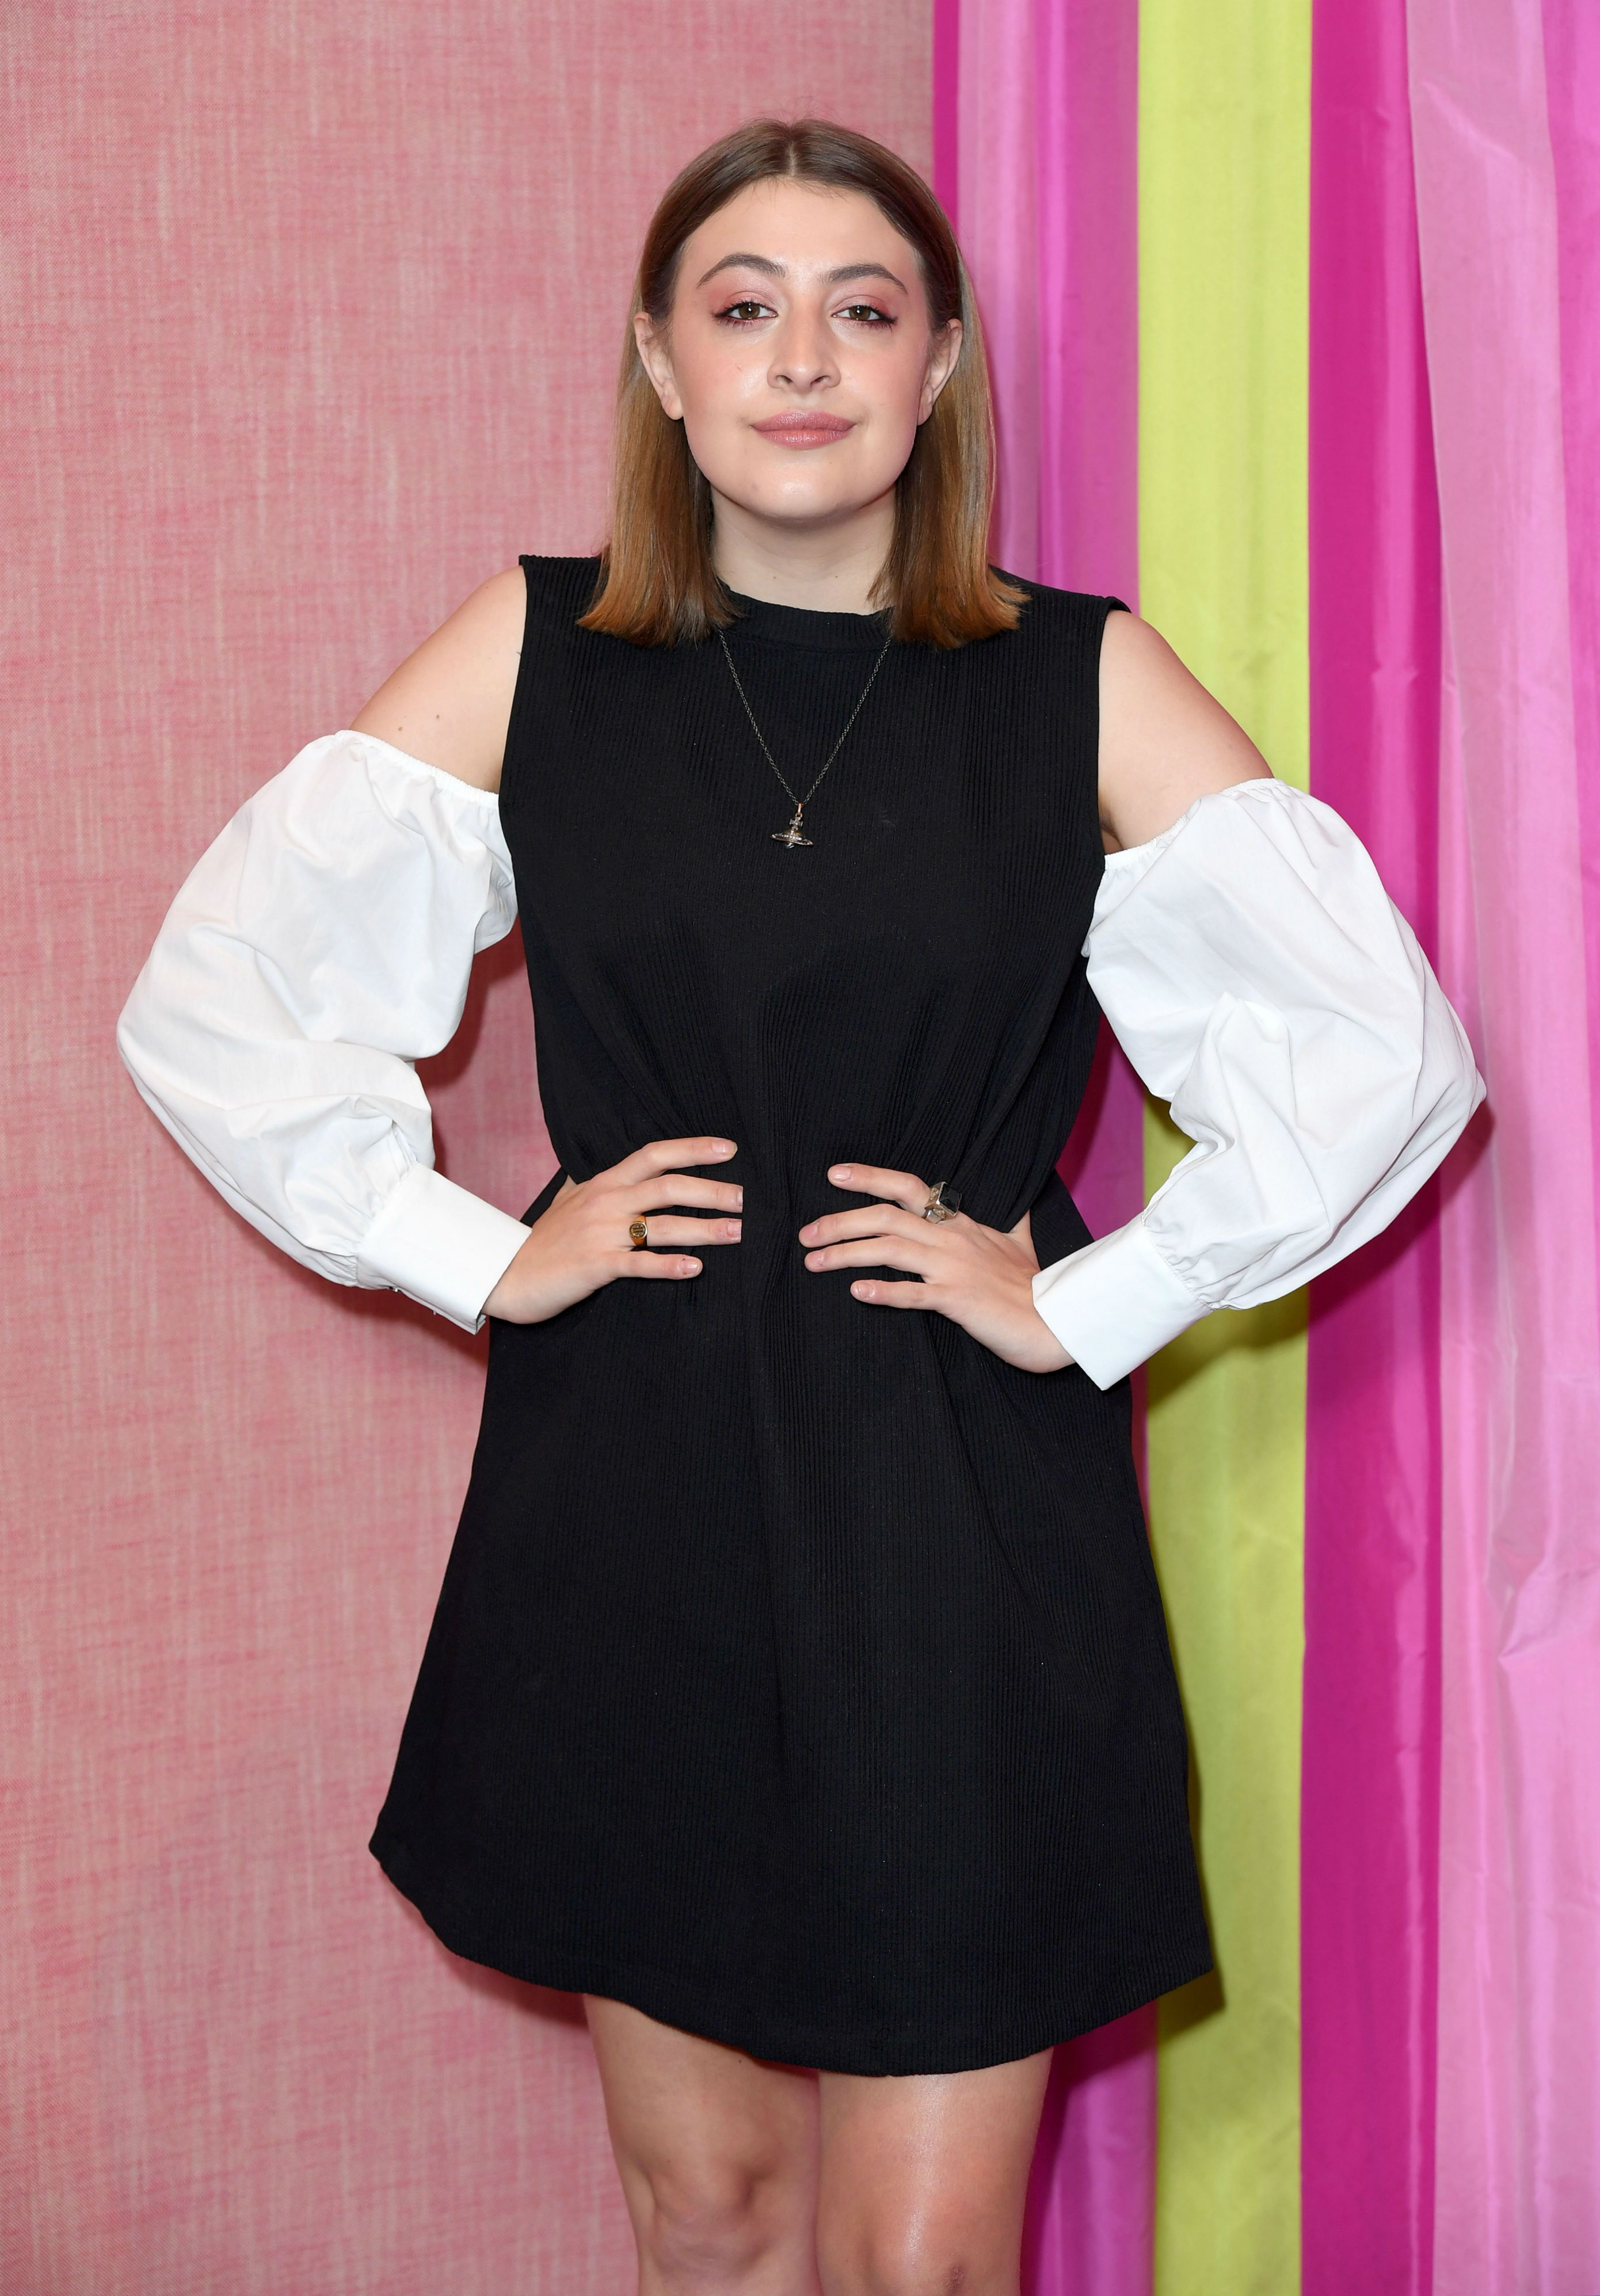 Angus Thongs And Perfect Snogging Cast sunday brunch welcomes angus, thongs and perfect snogging